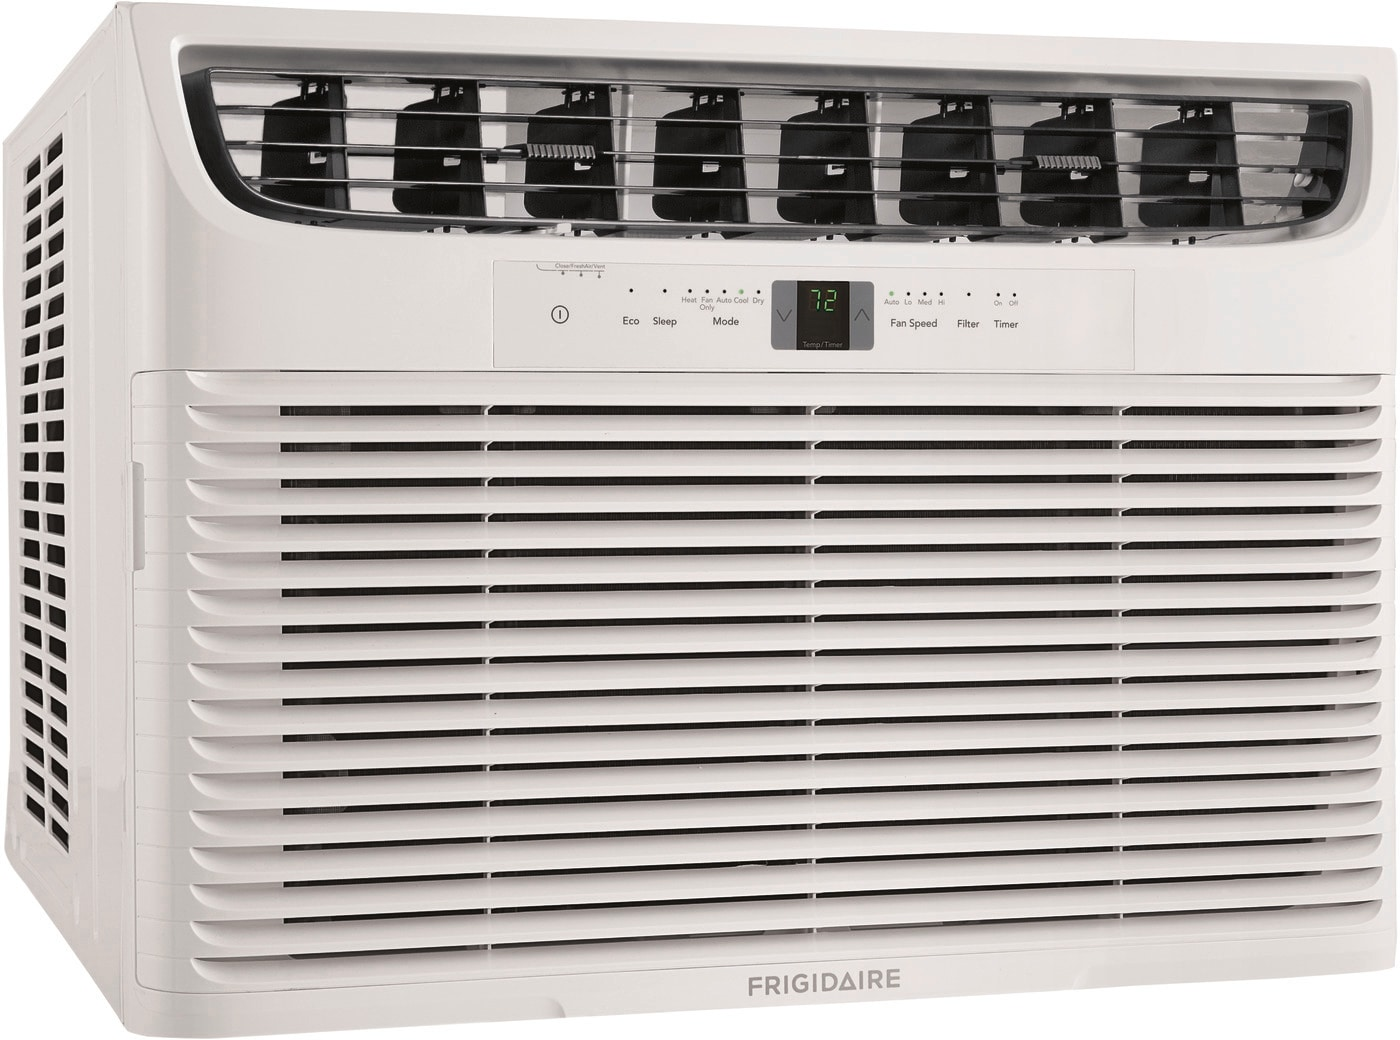 Frigidaire 18,500 BTU Window Air Conditioner with Supplemental Heat and Slide Out Chassis, FHWE182WA2